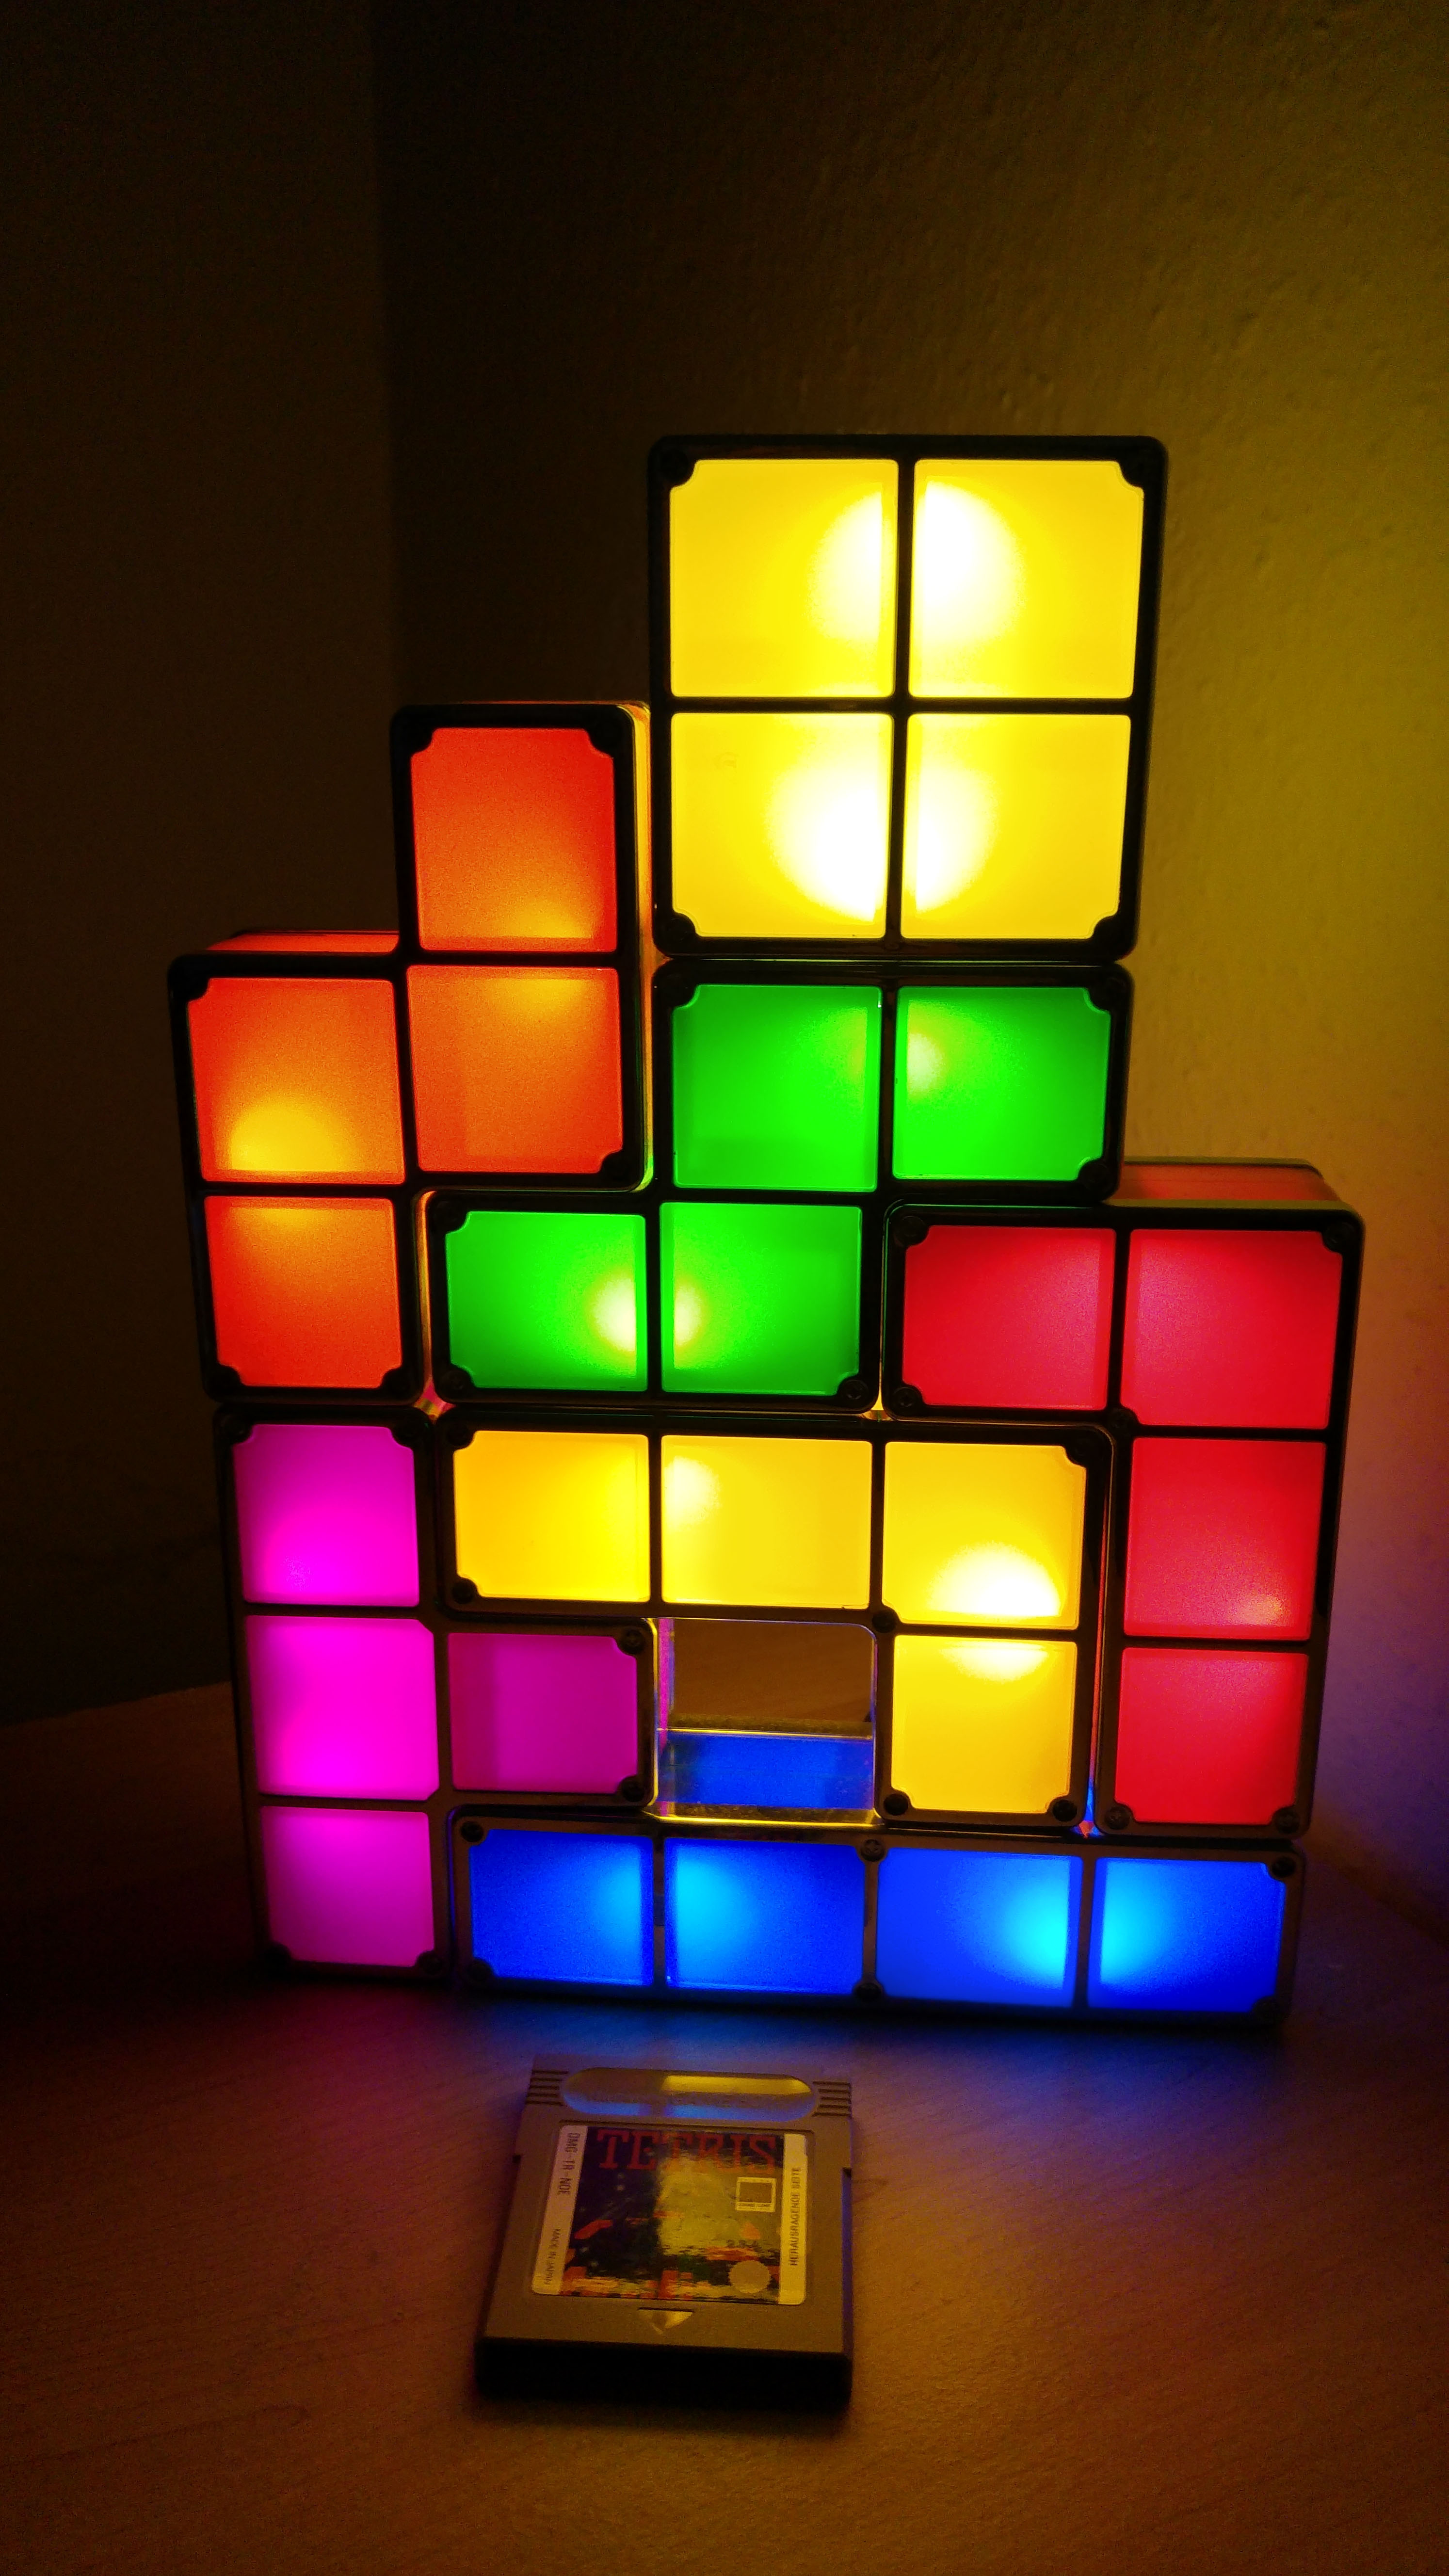 tetris lampe getdigital. Black Bedroom Furniture Sets. Home Design Ideas